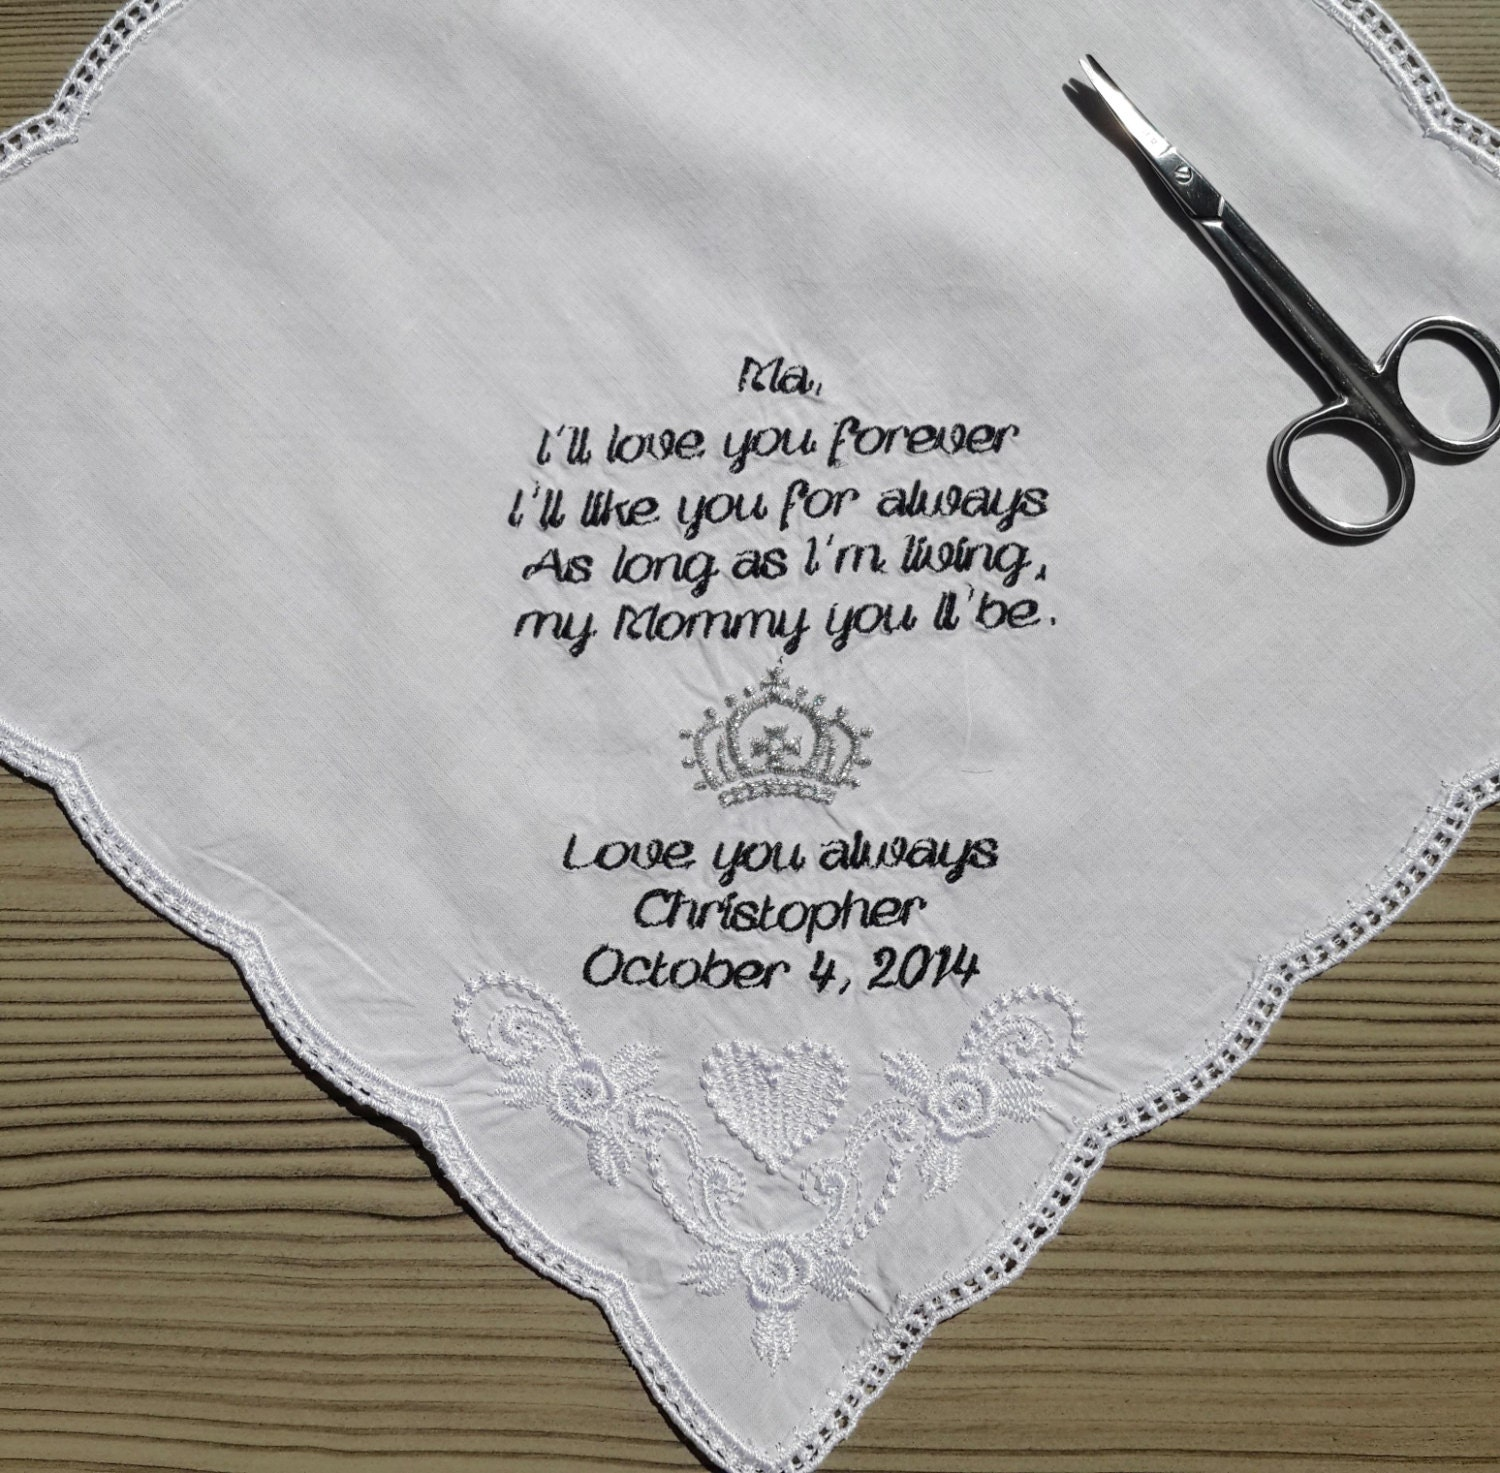 Personalised Wedding Gifts Quick Delivery : fast shipping Personalized Wedding Handkerchief by PromiseForever